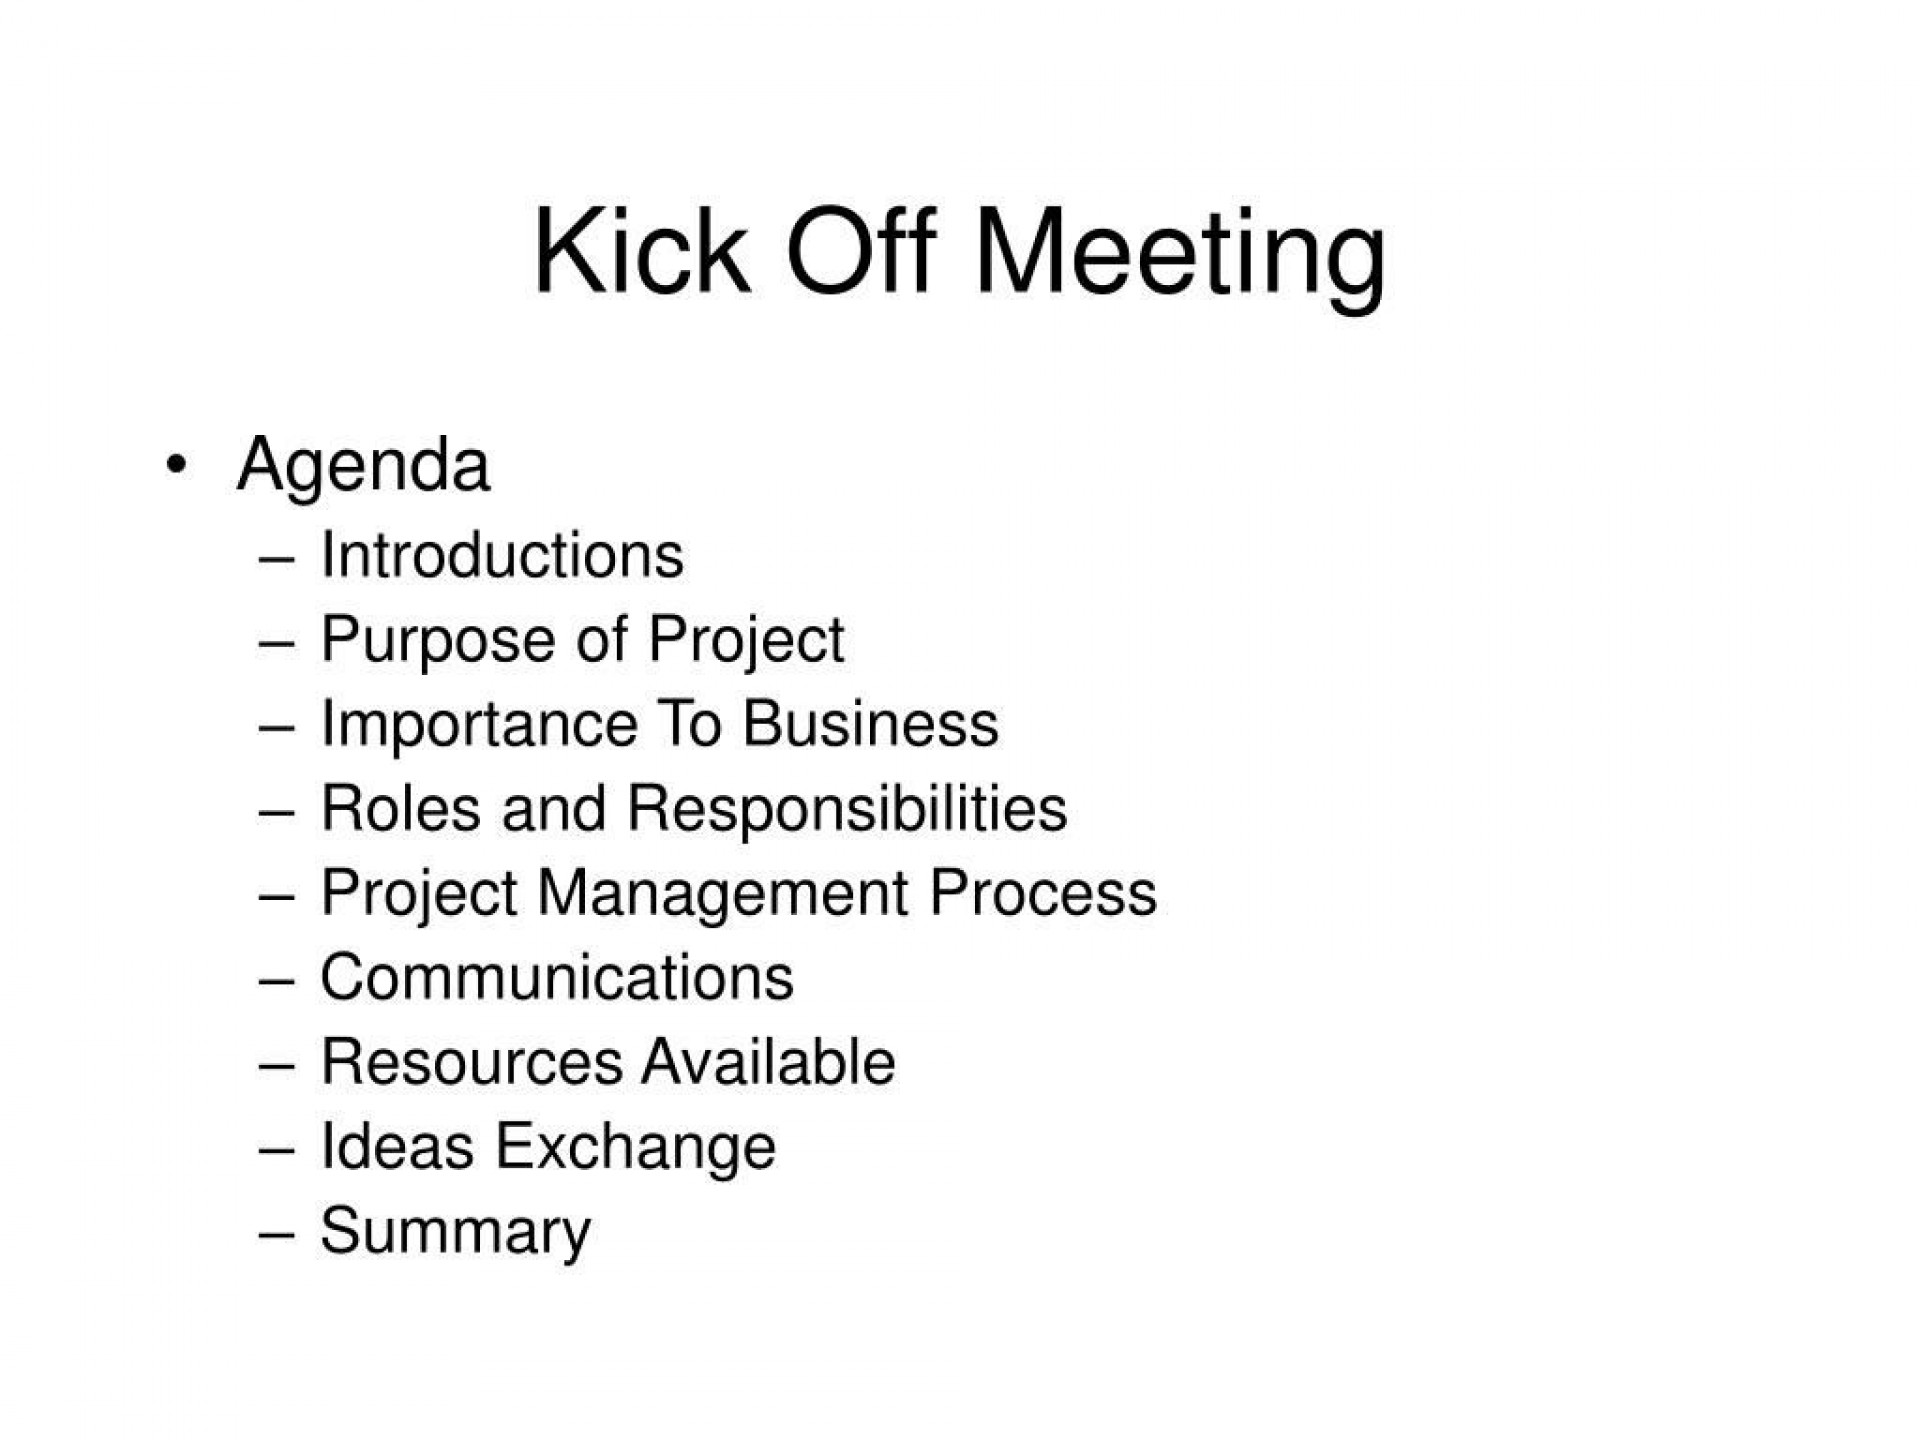 006 Stirring Project Kick Off Template Ppt Photo  Meeting Management Kickoff1920